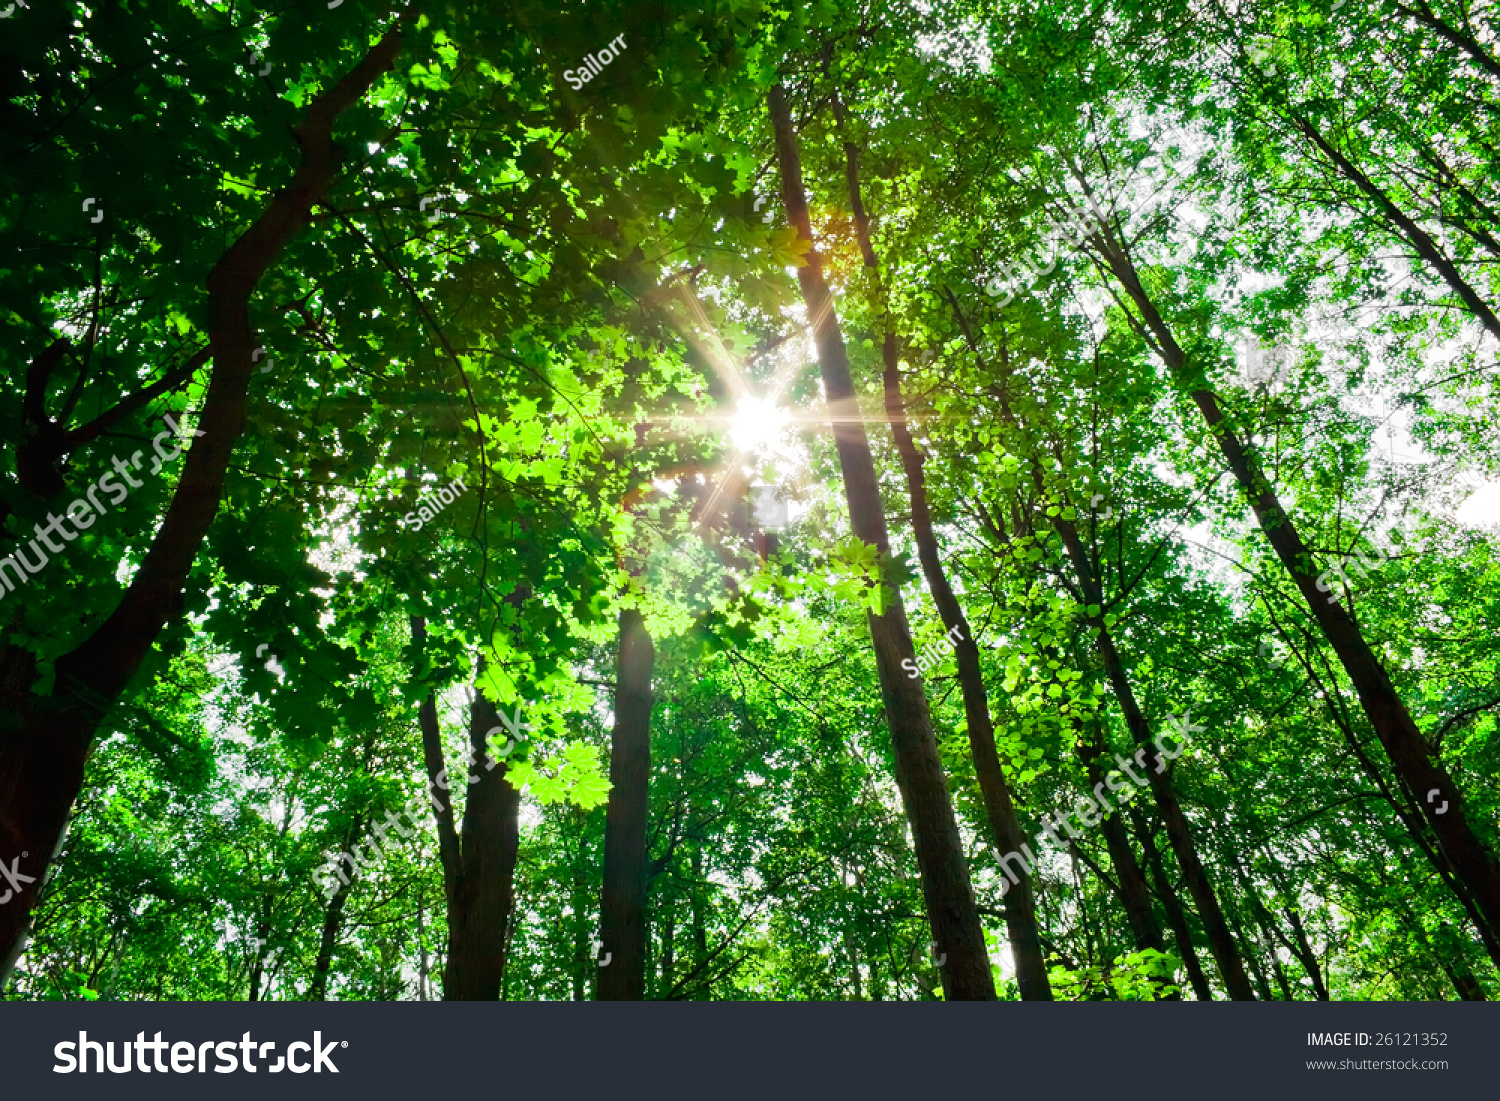 Nice Sunny Day In Green Forest With High Trees Stock Photo